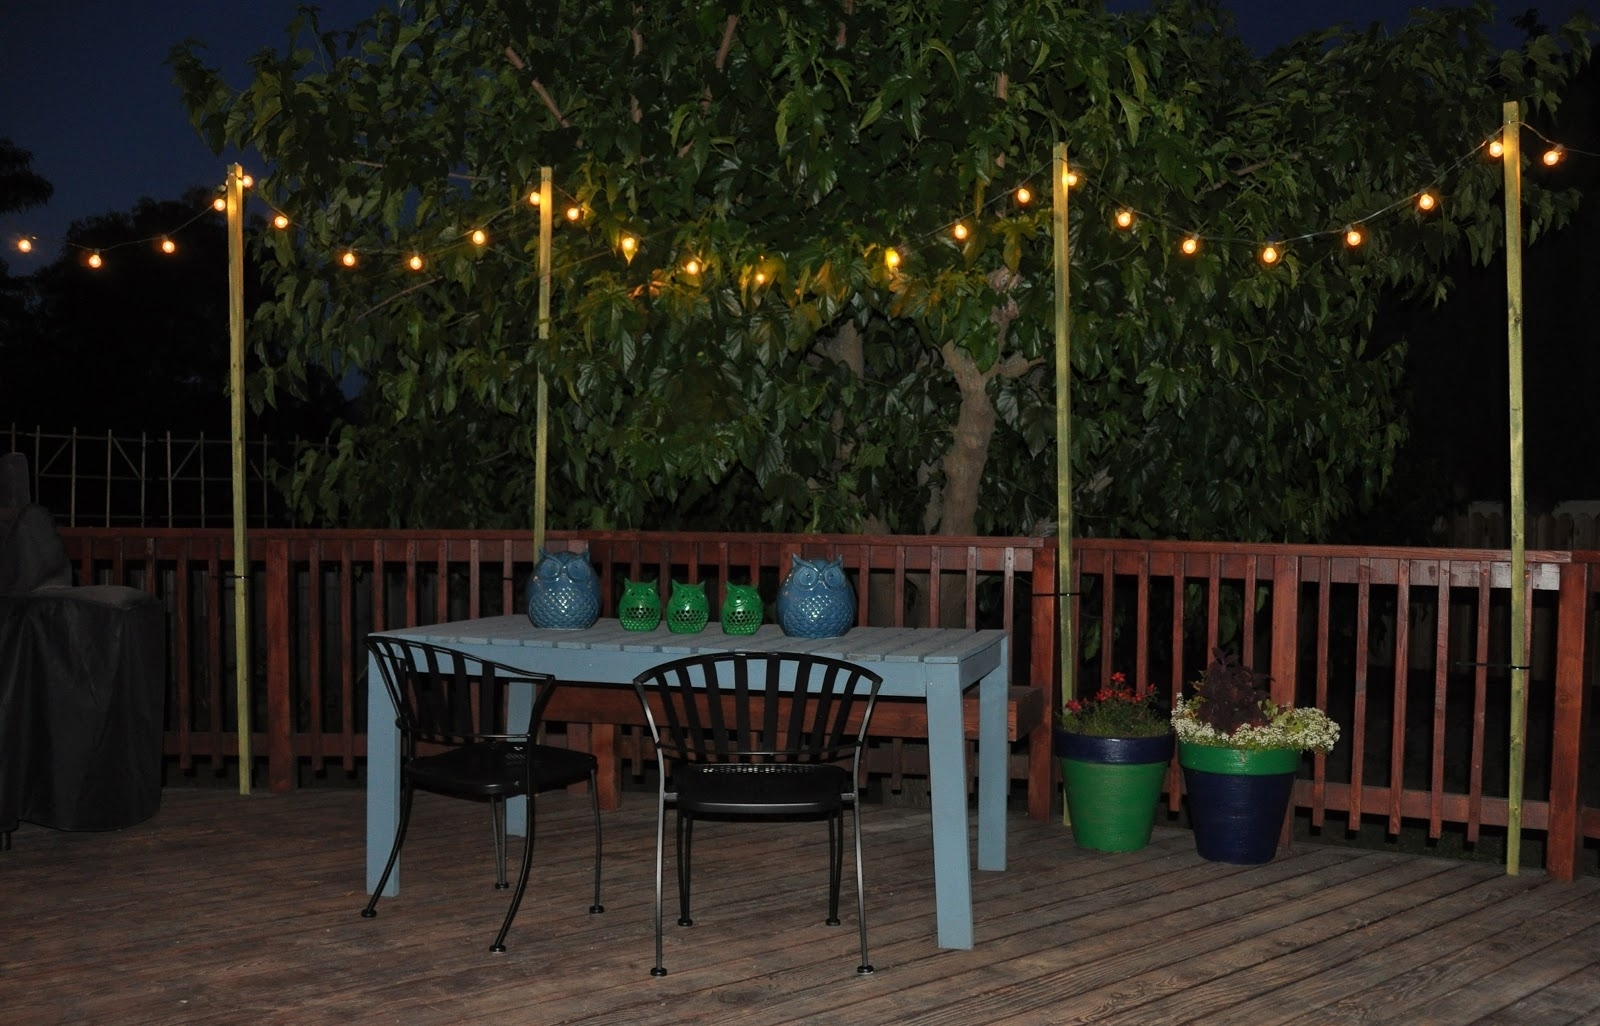 Glamorous Backyard String Lights Decorative Indoor Porch Led Hanging In Widely Used Outdoor Hanging Deck Lights (View 4 of 20)